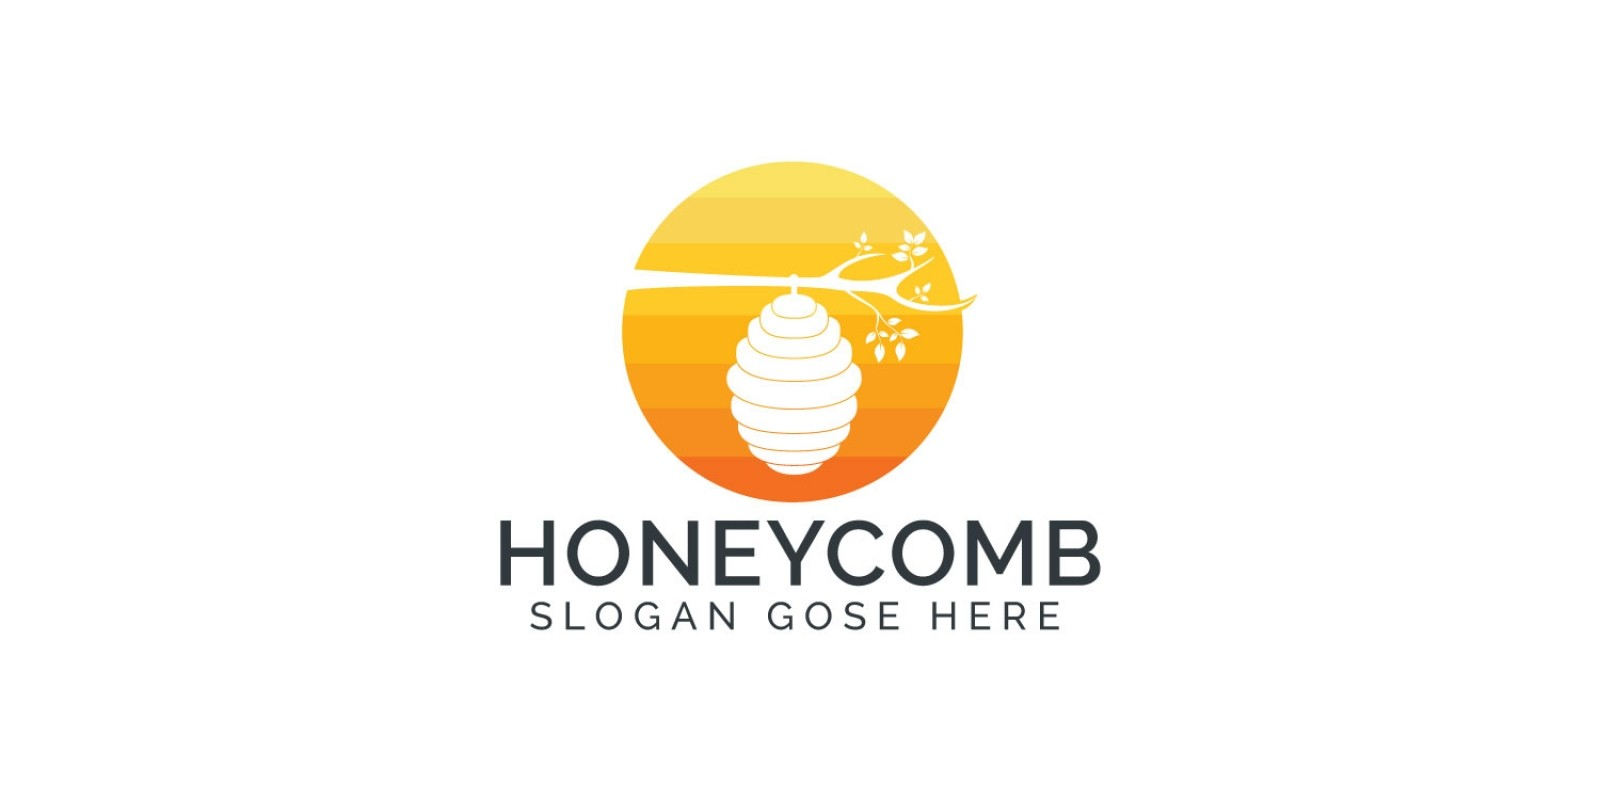 Honeycomb Logo Design